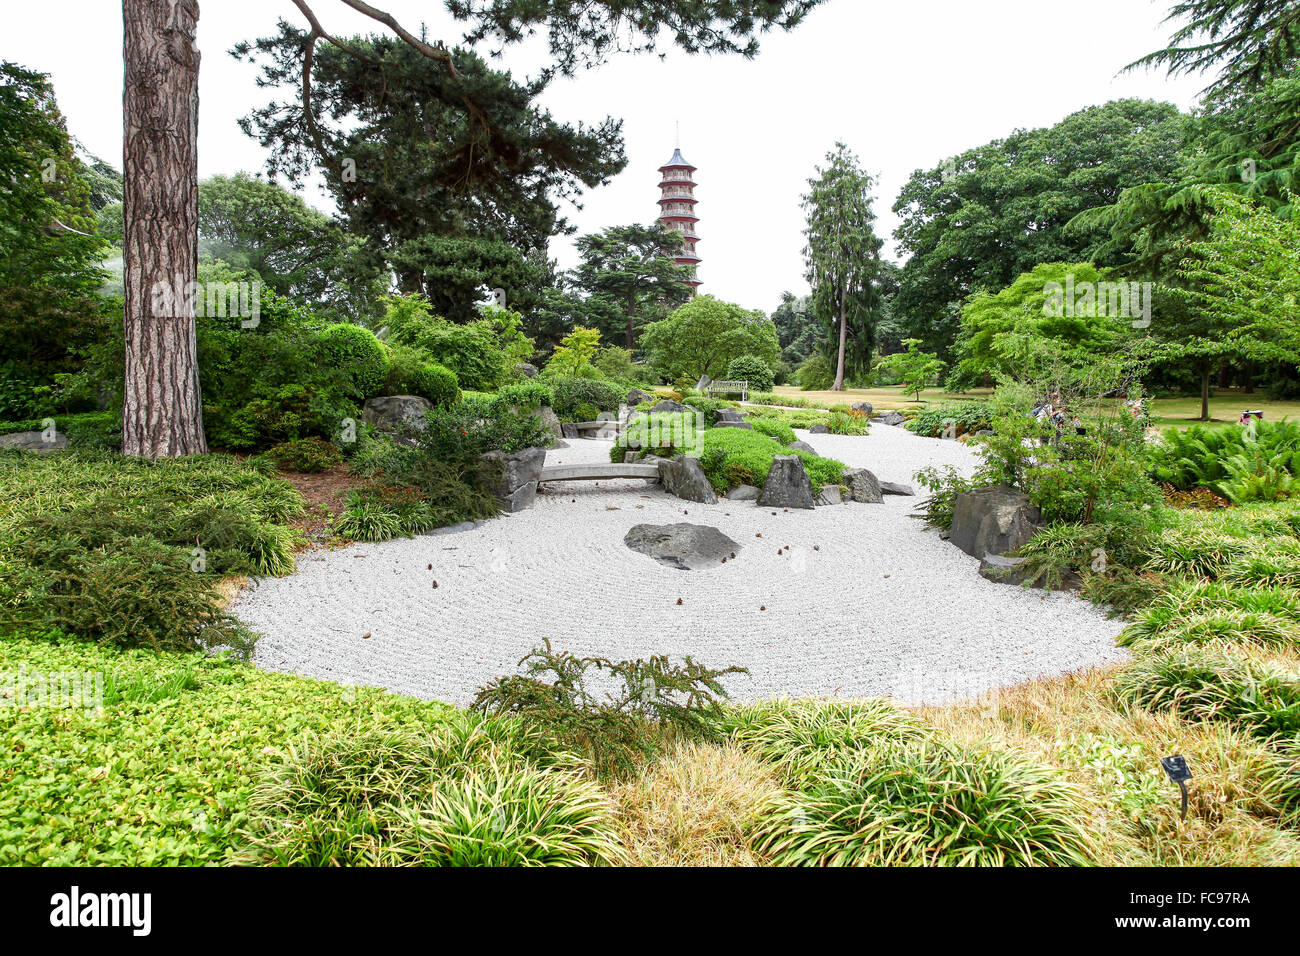 The Japanese Garden With The Chinese Pagoda In The Background At - Japanese gardens in england